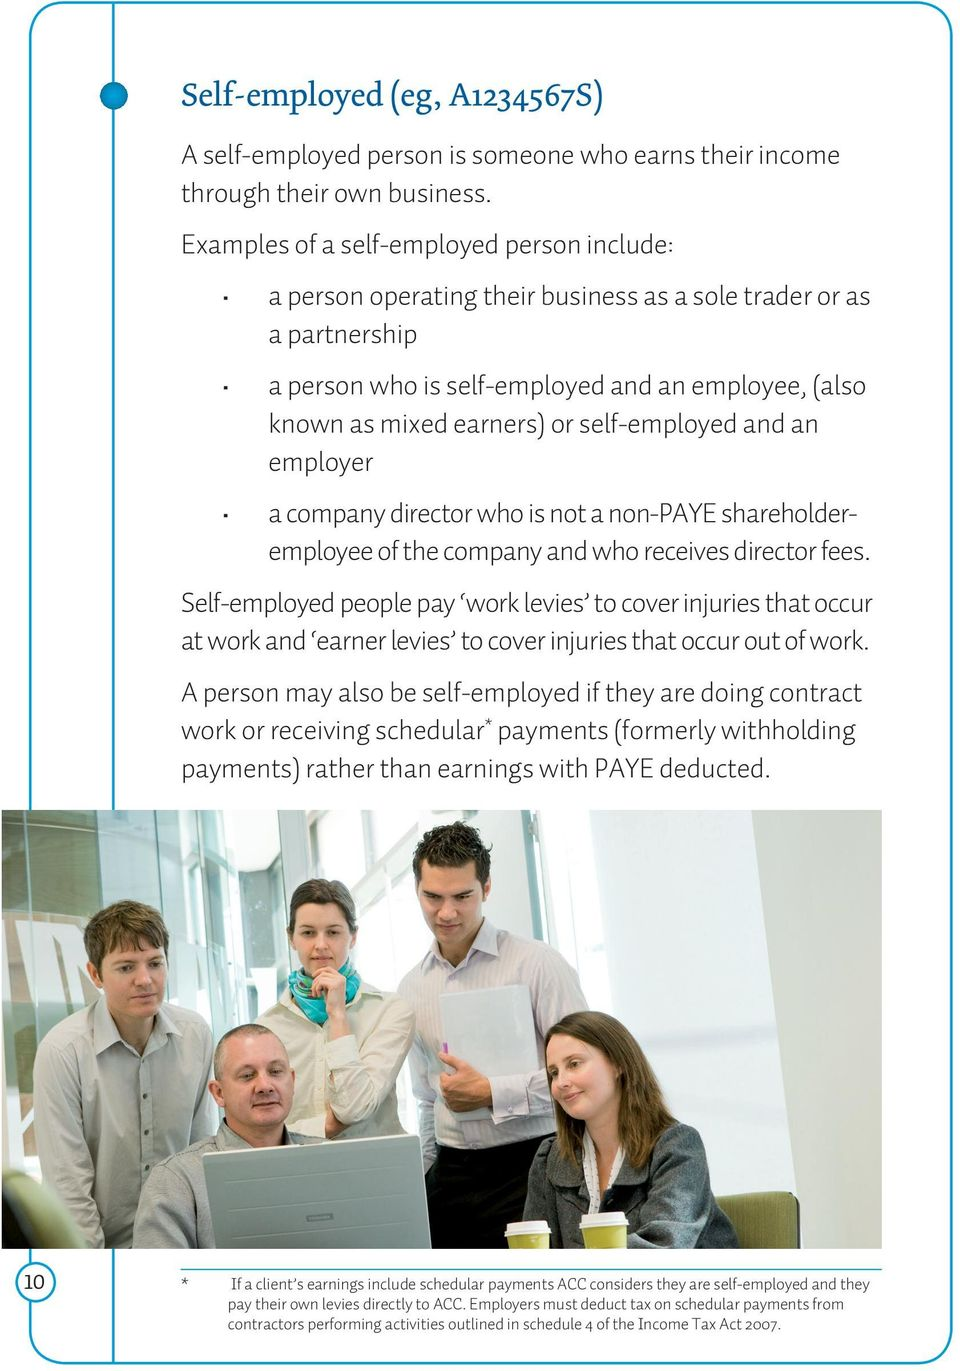 self-employed and an employer a company director who is not a non-paye shareholderemployee of the company and who receives director fees.